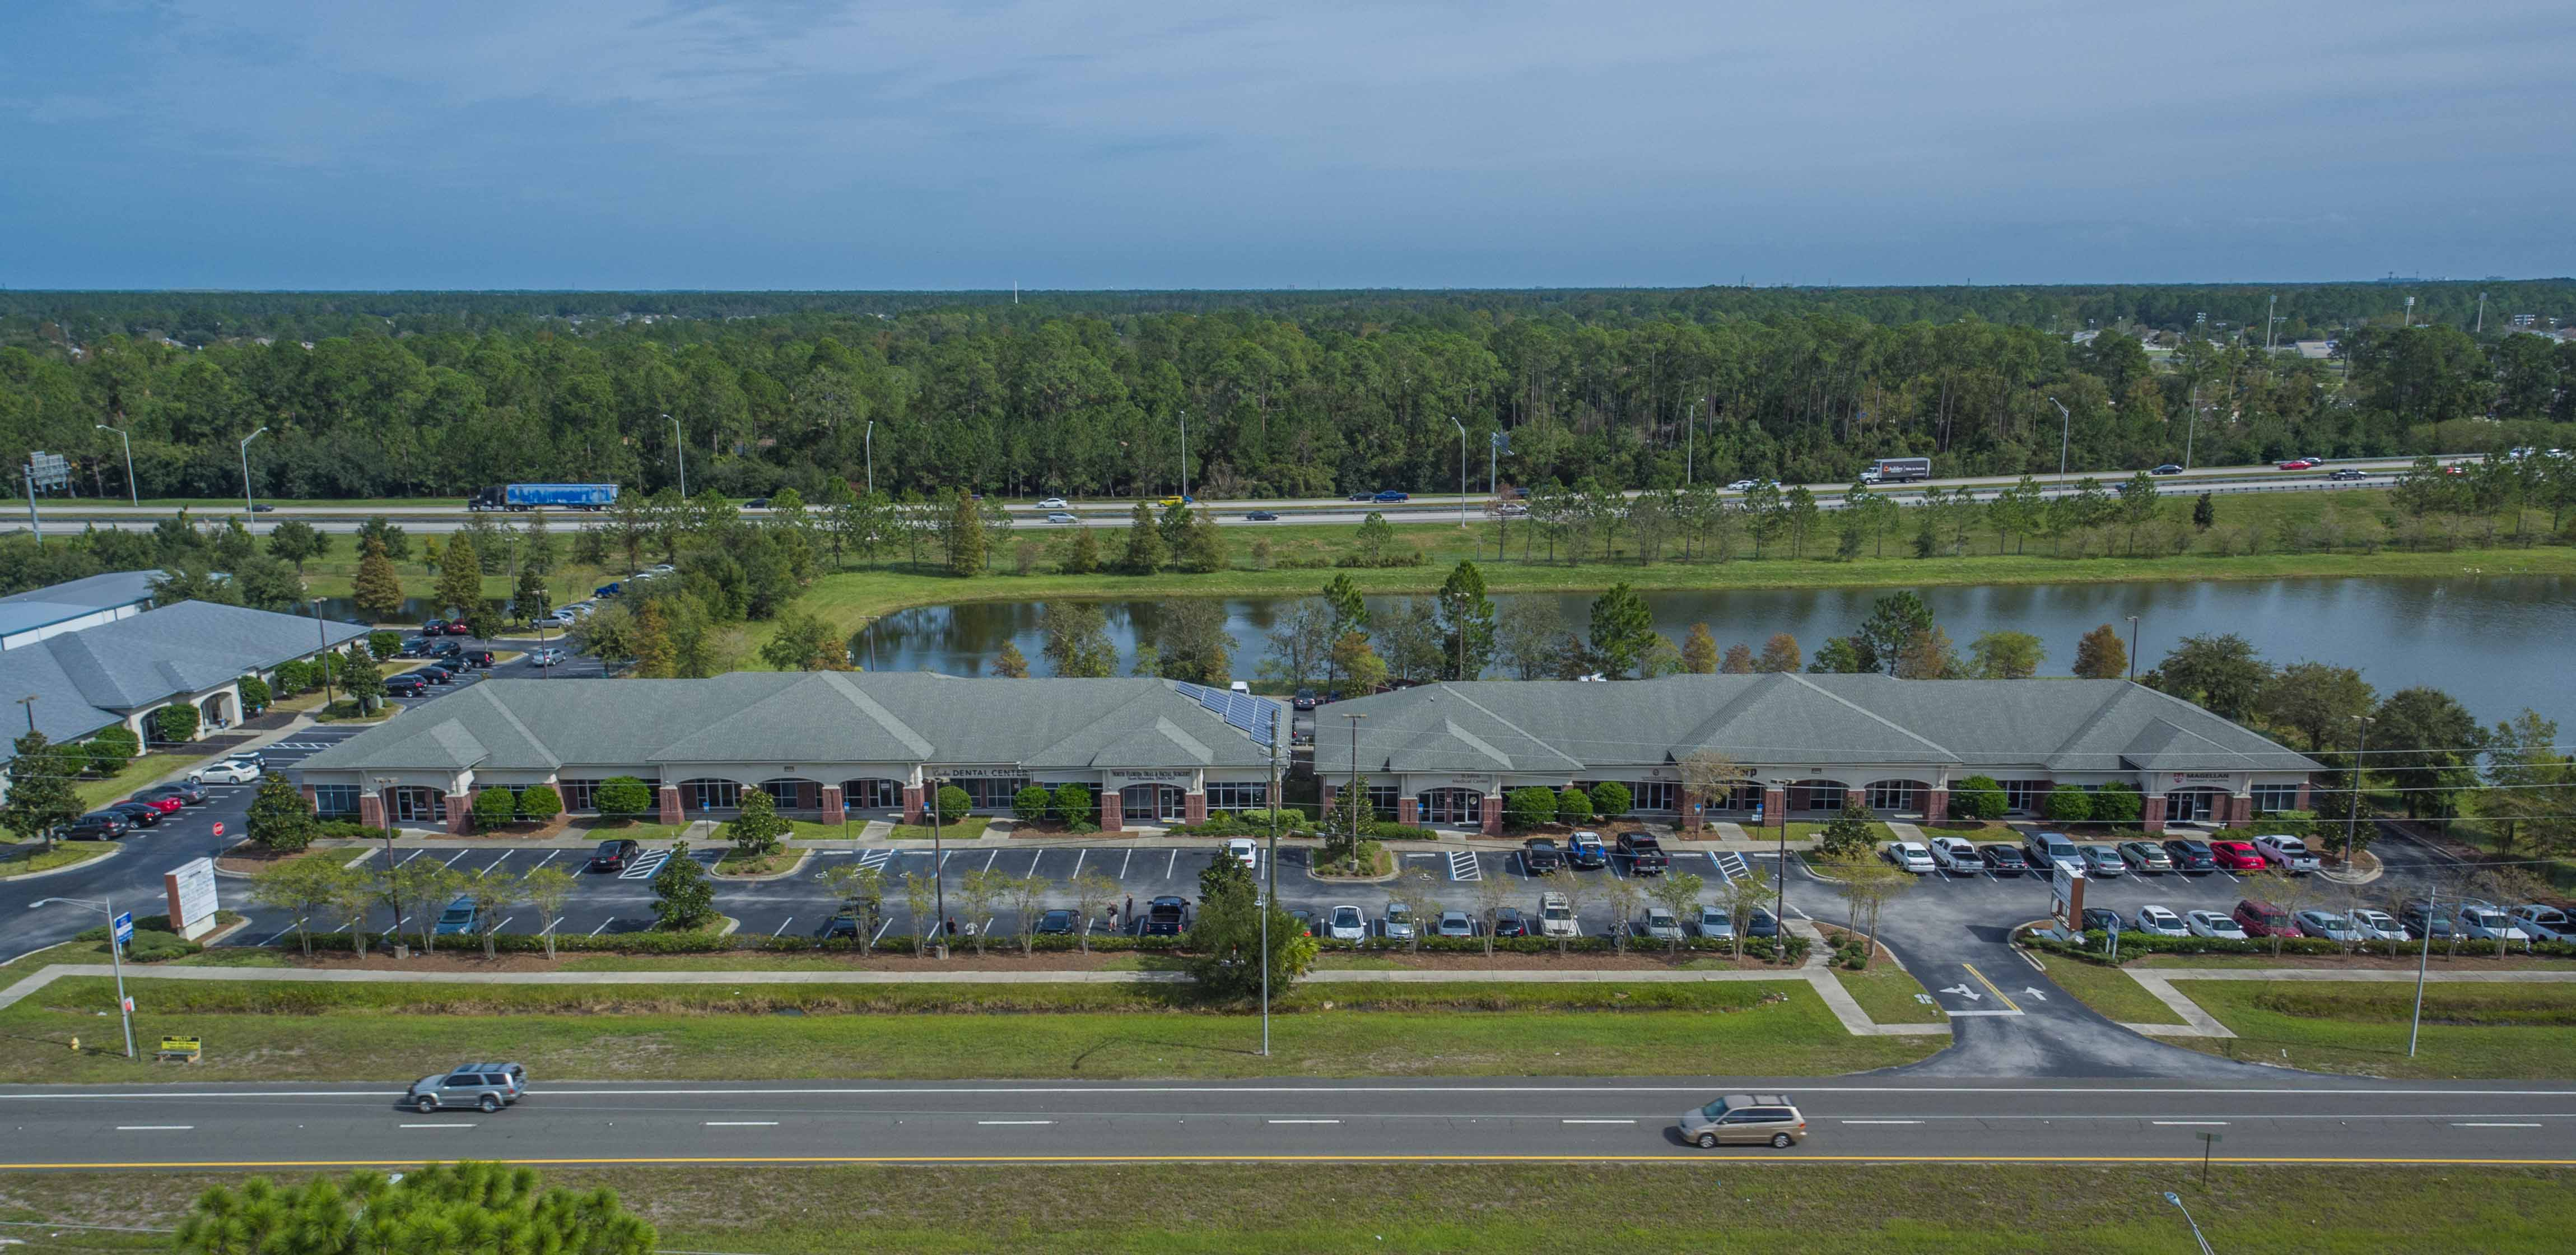 Lakeside Professional Center, 2511 St Johns Bluff Rd S, Jax, FL 32246.  1900 sf to 7600 sf, professional office